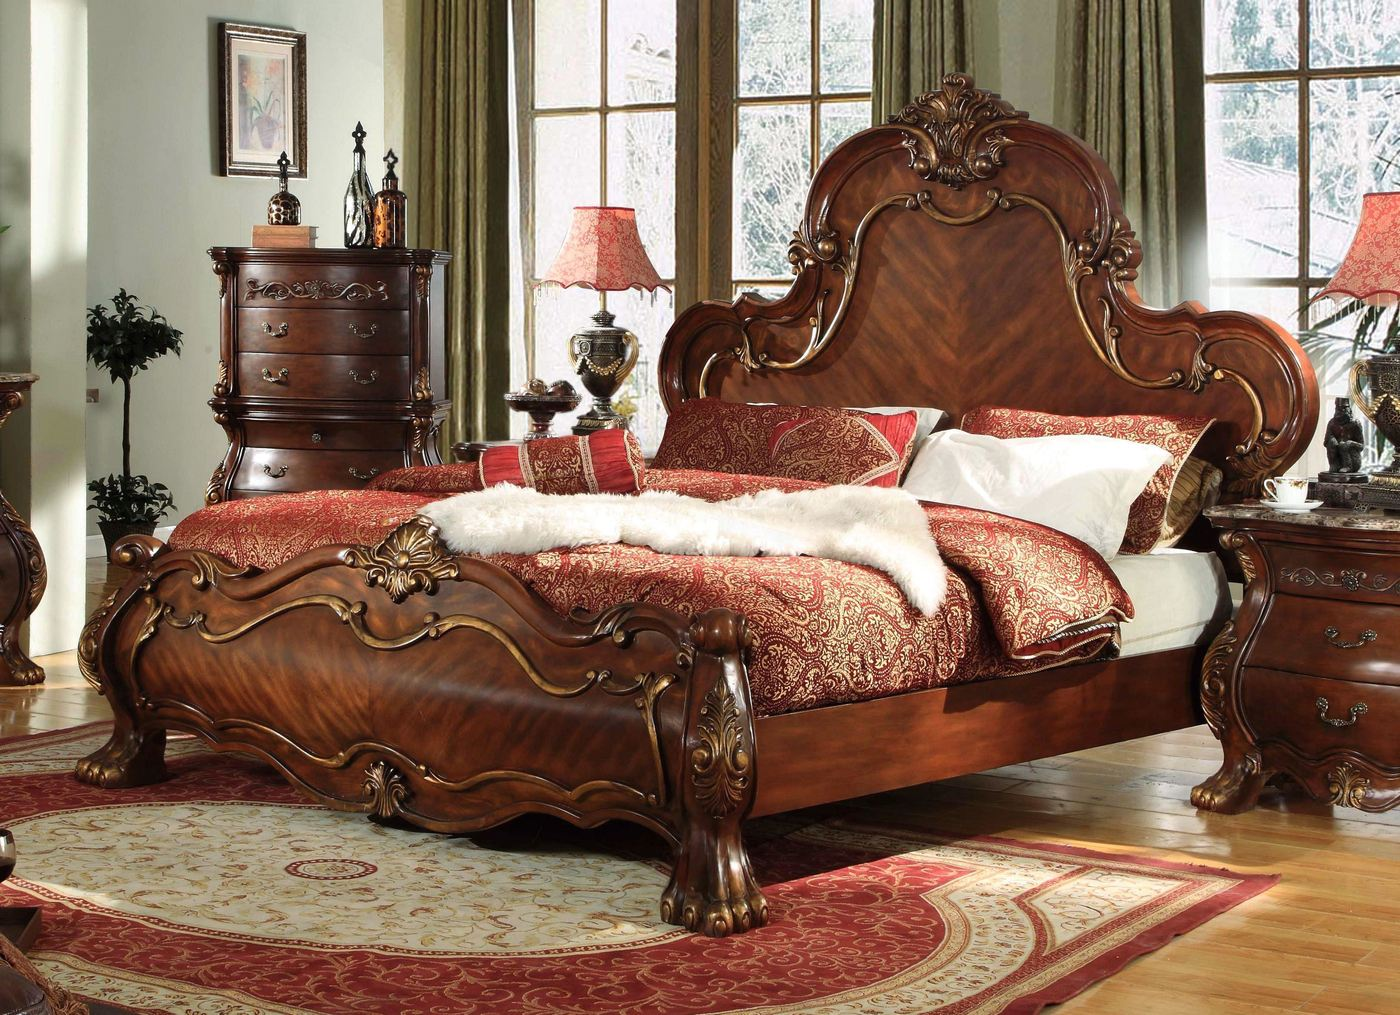 Ornate french rococo royale queen bed with chestnut finish for French baroque bed